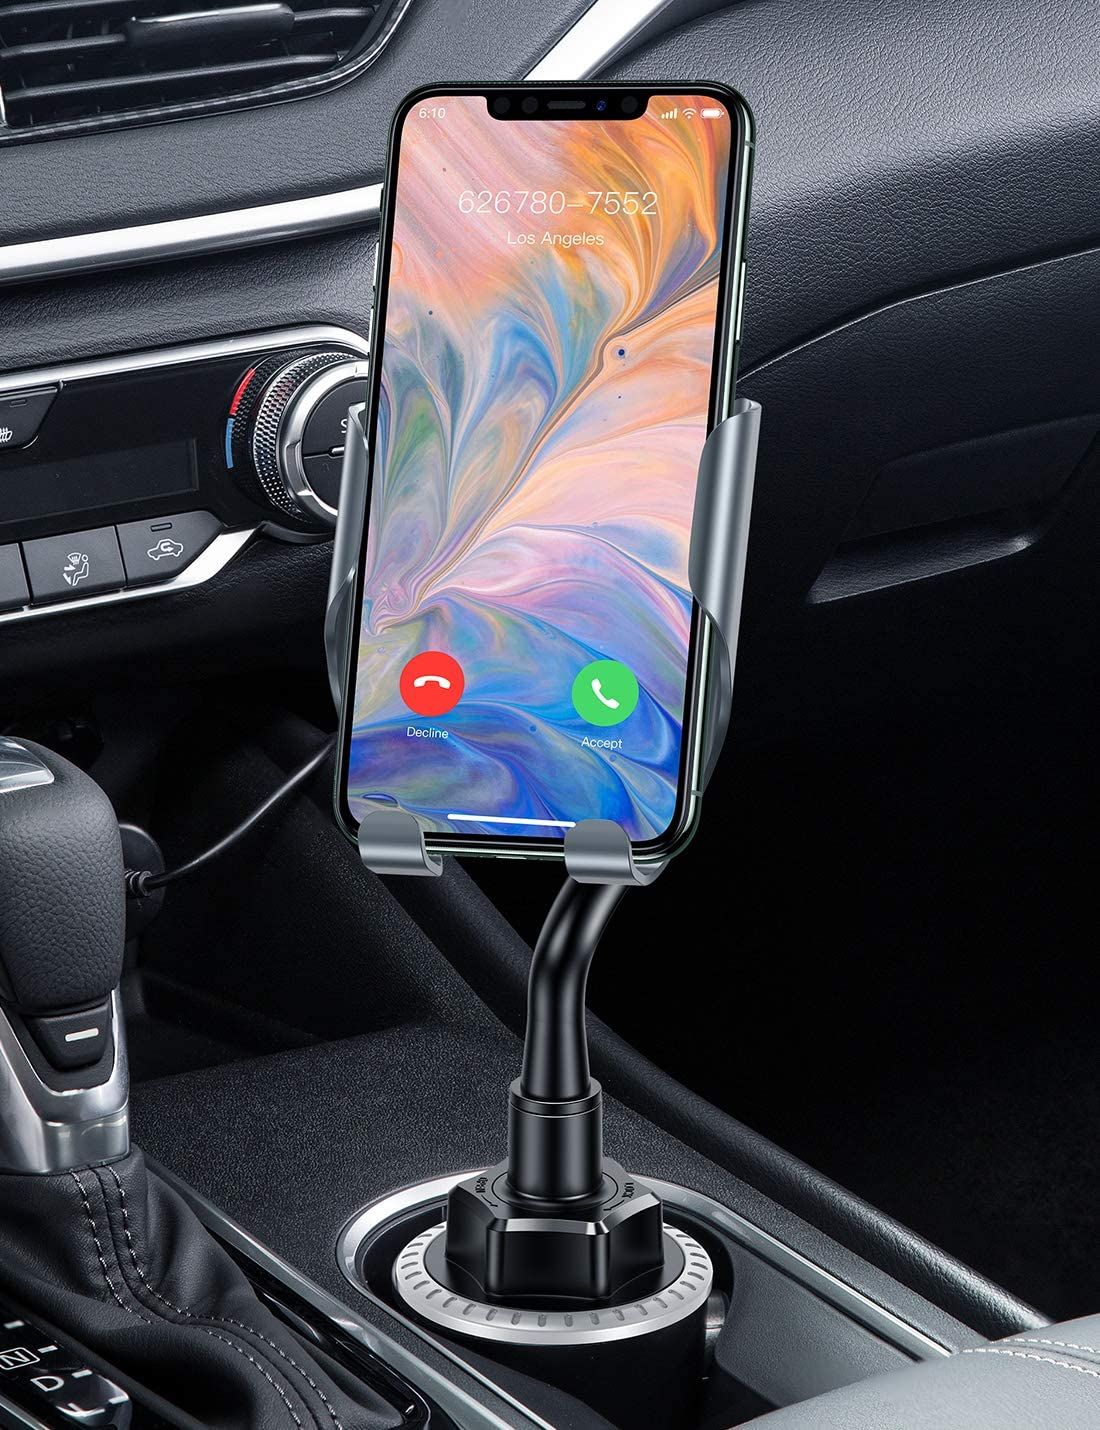 VICSEED Cup Holder Phone Mount, Easy and Sturdy Cup Phone Holder for Car, Fully Adjustable Car Phone Mount Fits iPhone 12 Pro Max Mini SE 9 11 Pro Max Xr Xs Max 8 Plus, Samsung S20 S10 Note 10 etc.